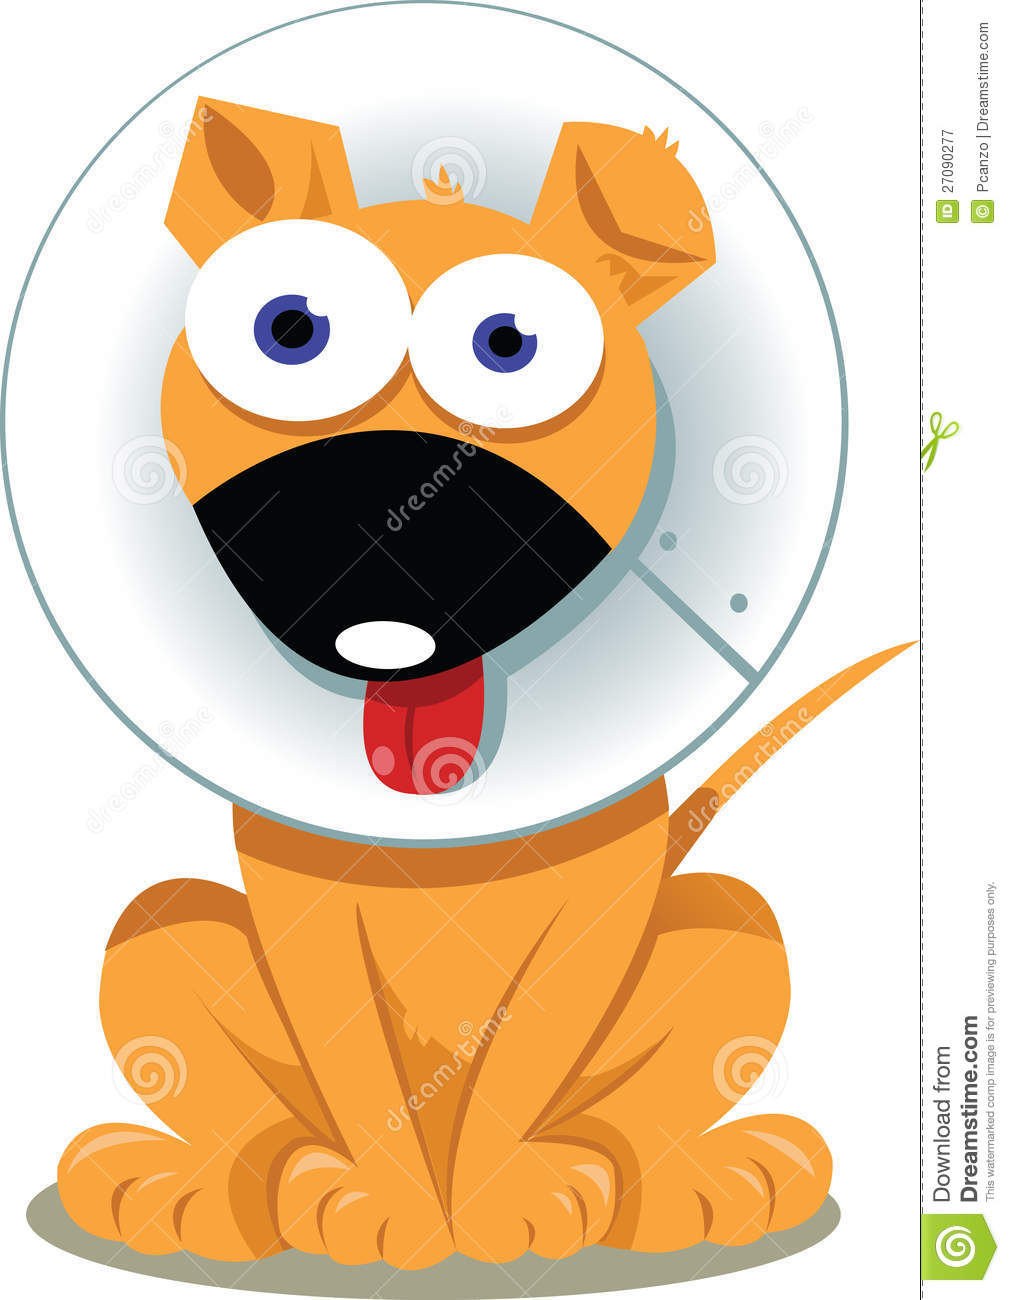 Funny Dog With Elizabethan Collar Royalty Free Stock Photography.